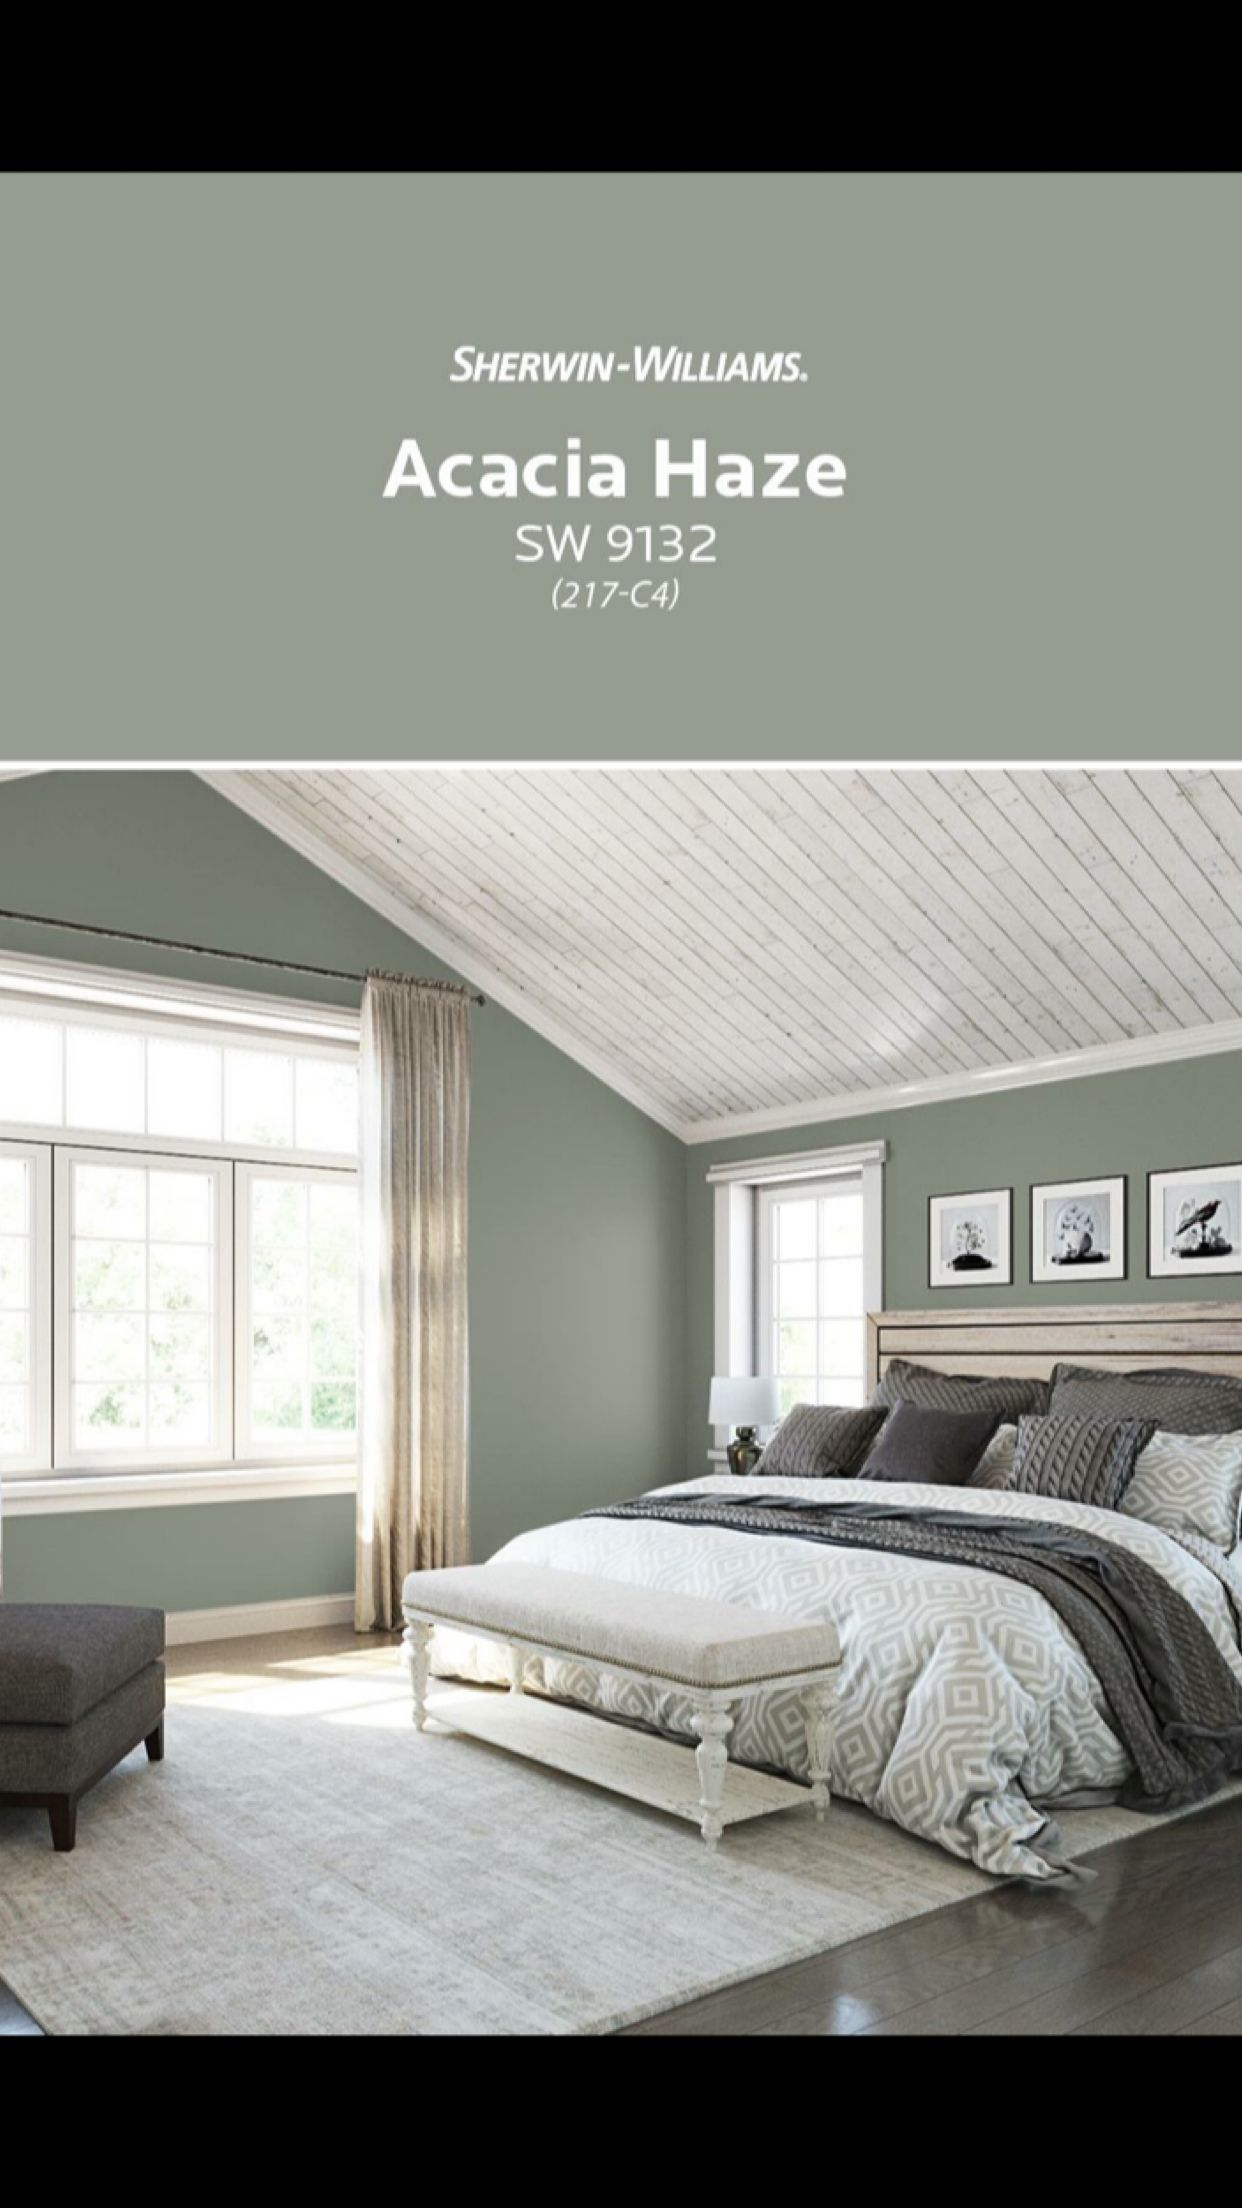 Acacia Haze Sherwin Williams